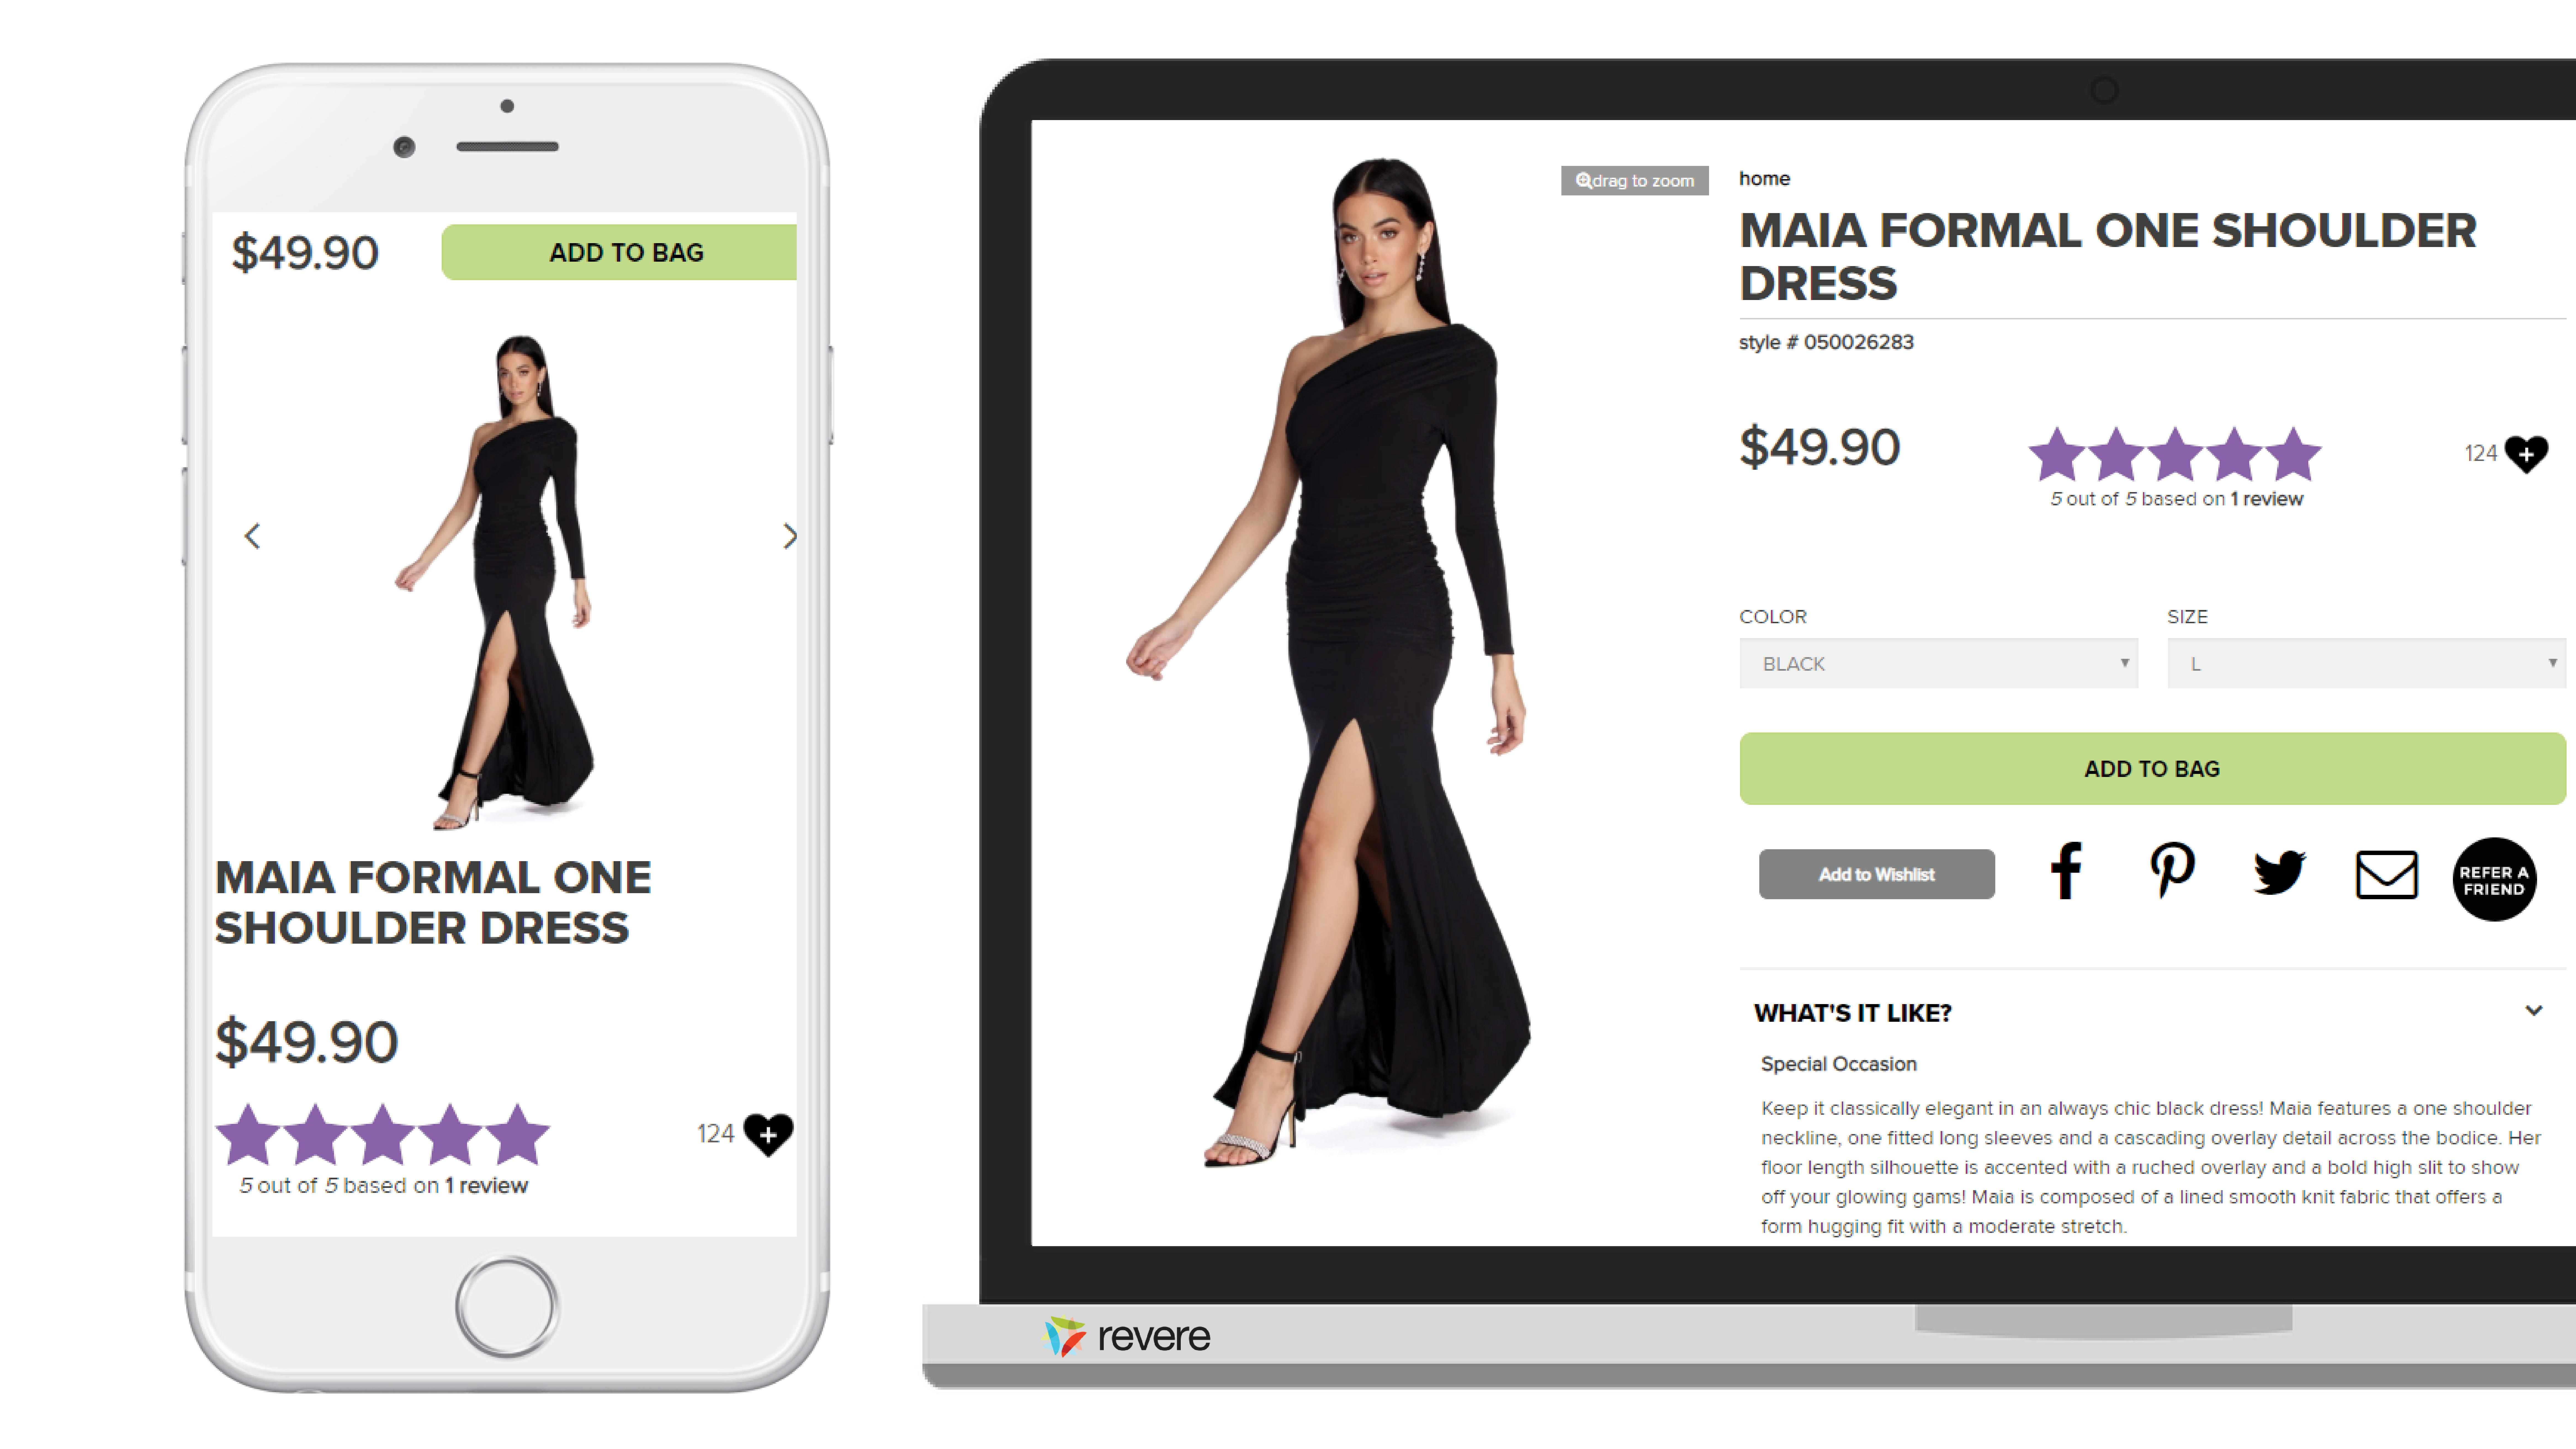 Fast fashion retailer's eCommerce site, featuring ratings and reviews.